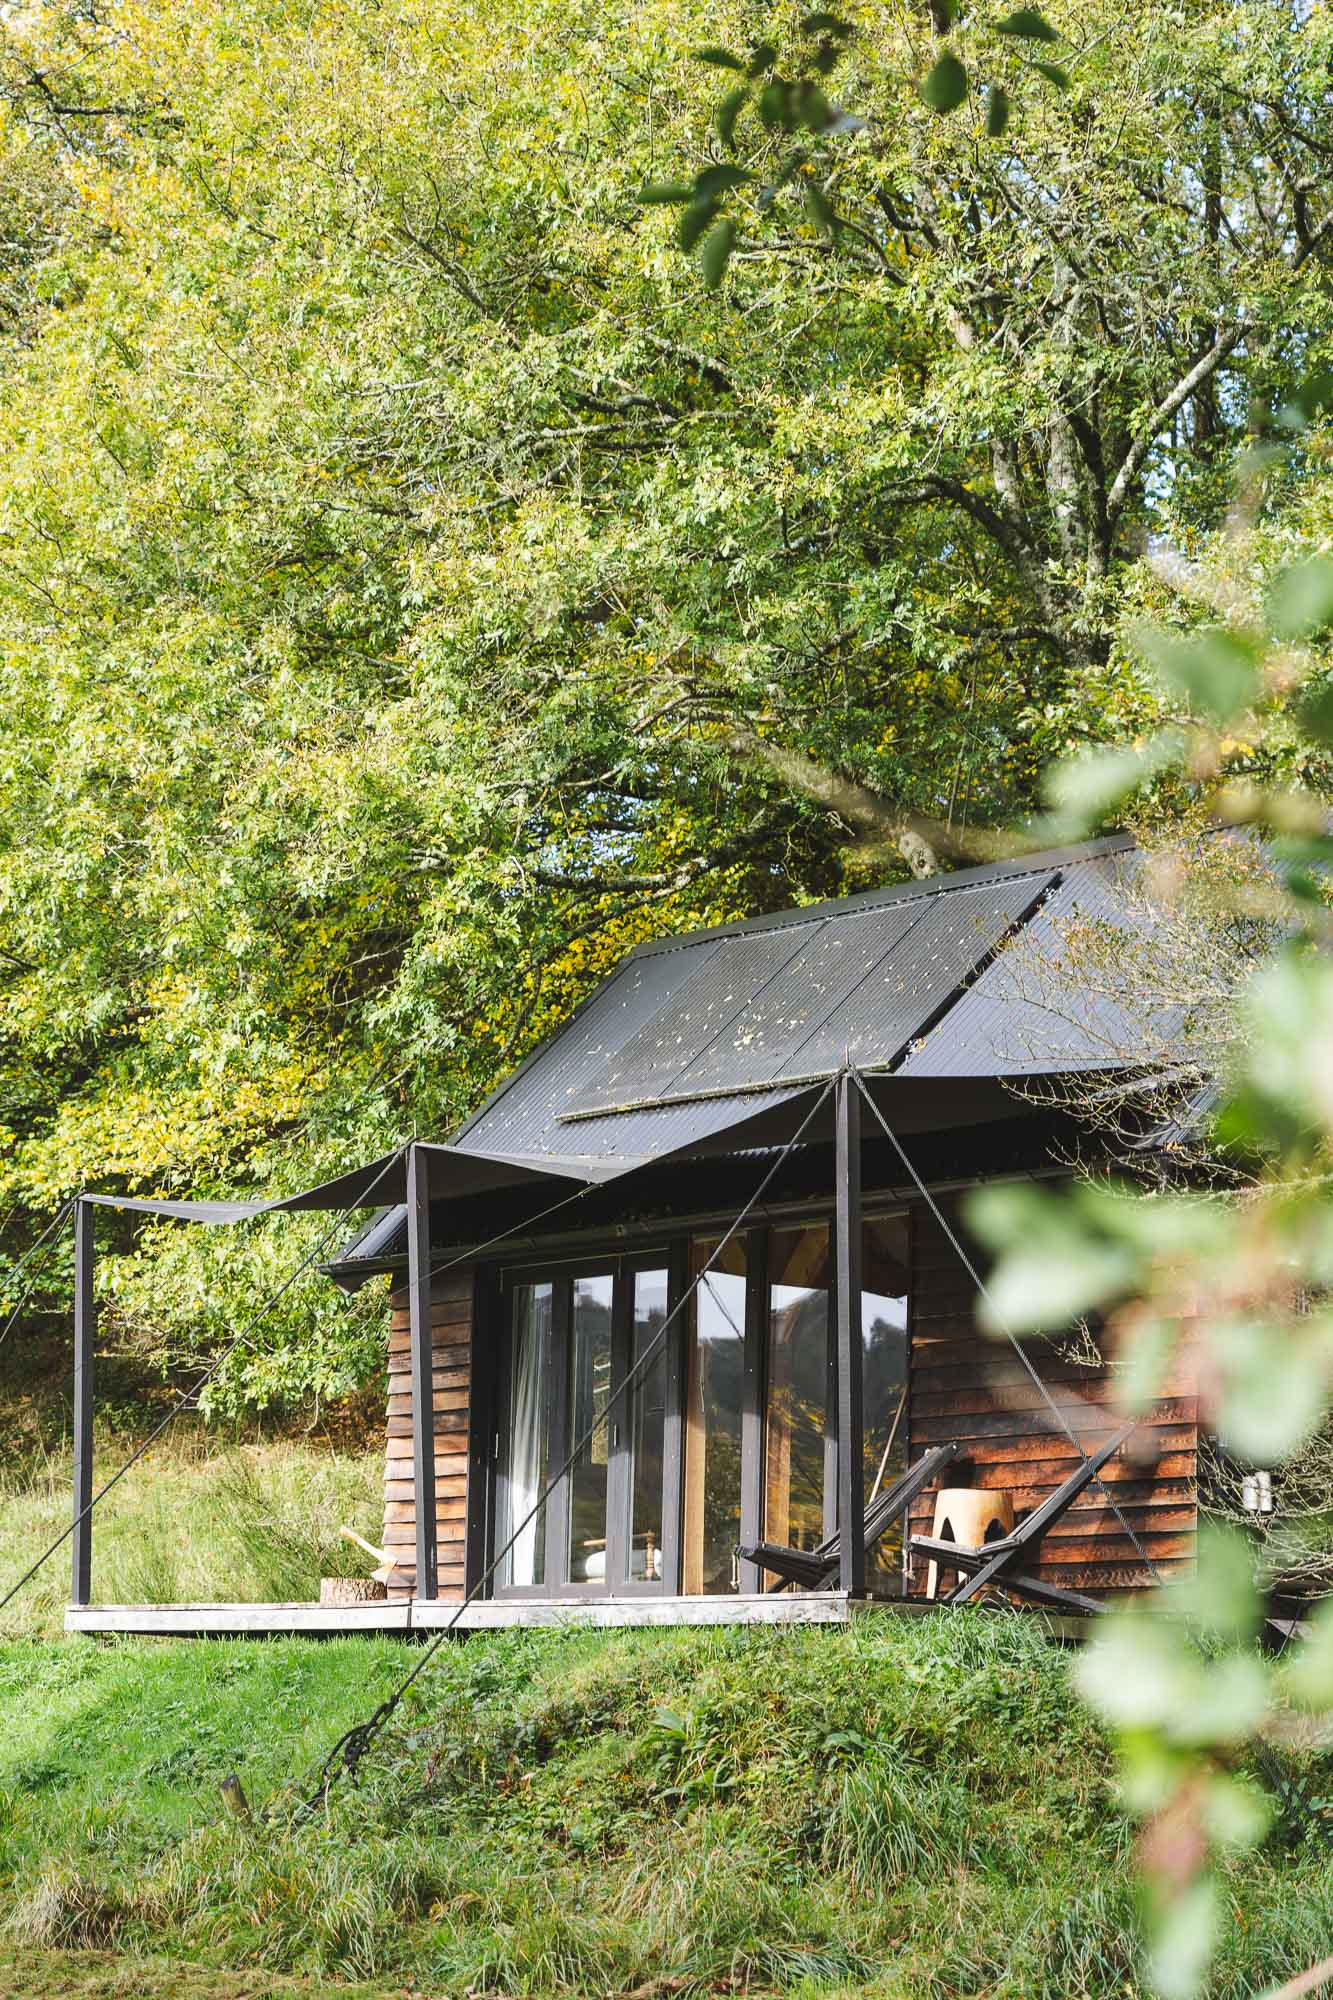 off grid wooden cabin with black cladding and canvas covered veranda, bi-fold doors overlooking landscape